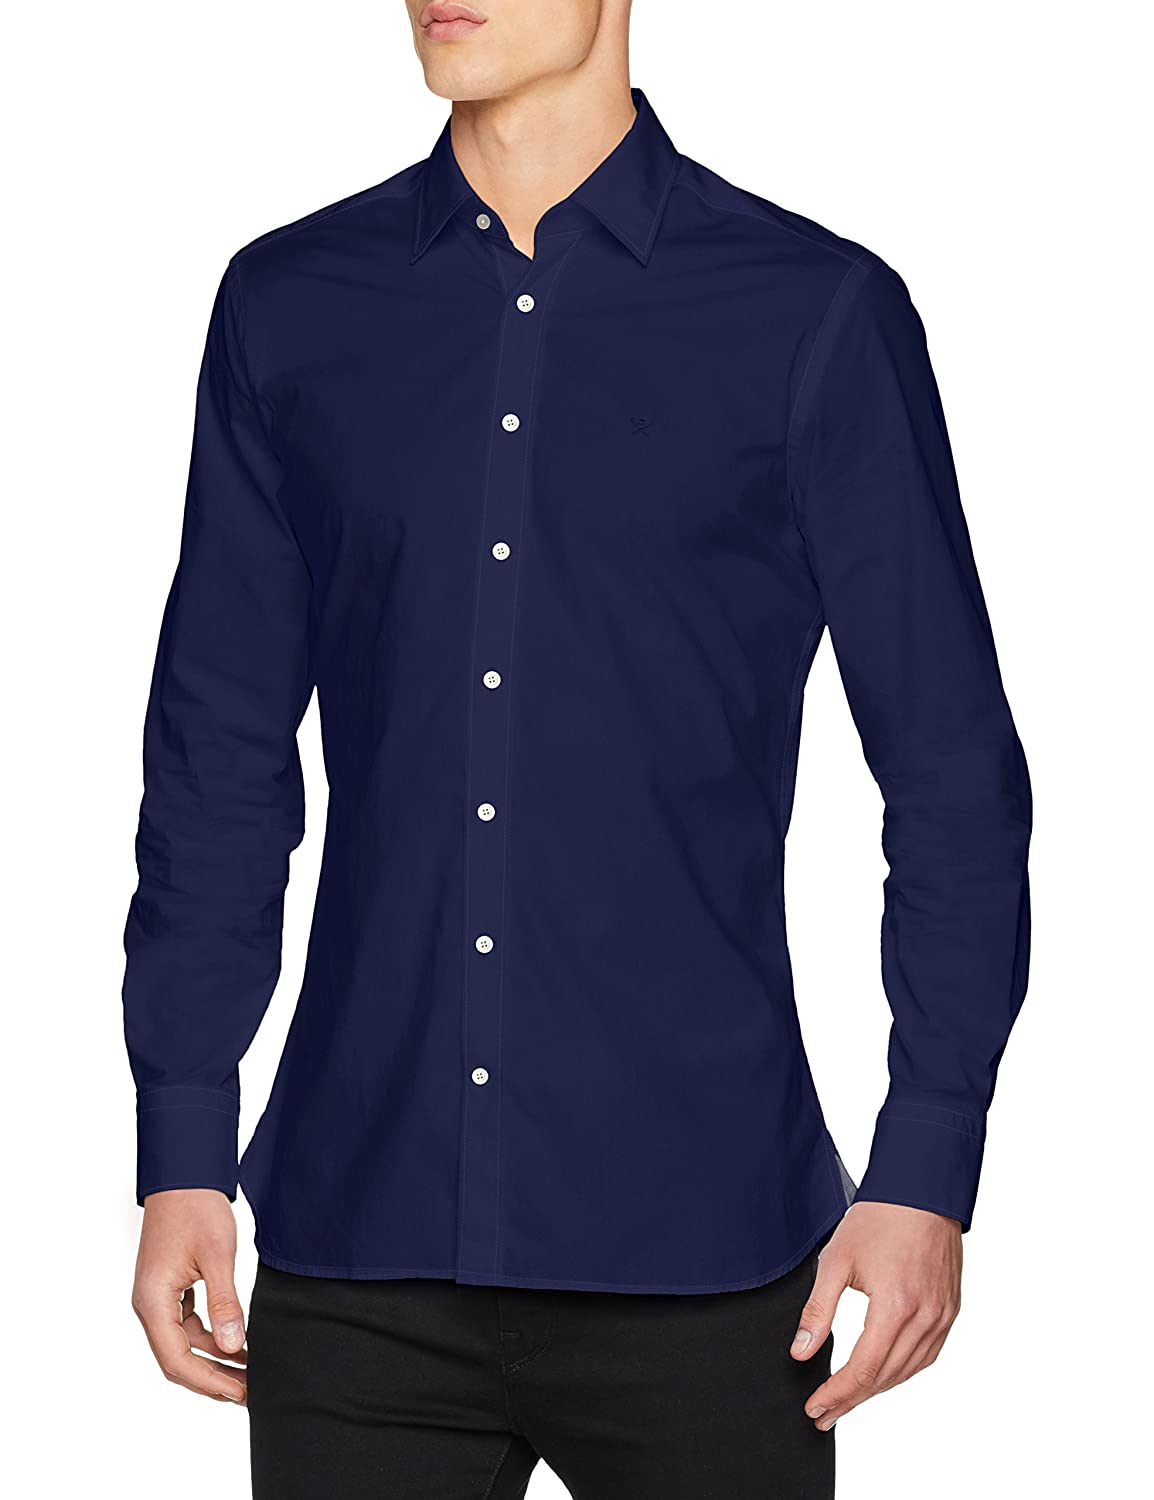 TALLA M. Hackett London Piece Dyed Poplin Camisa para Hombre